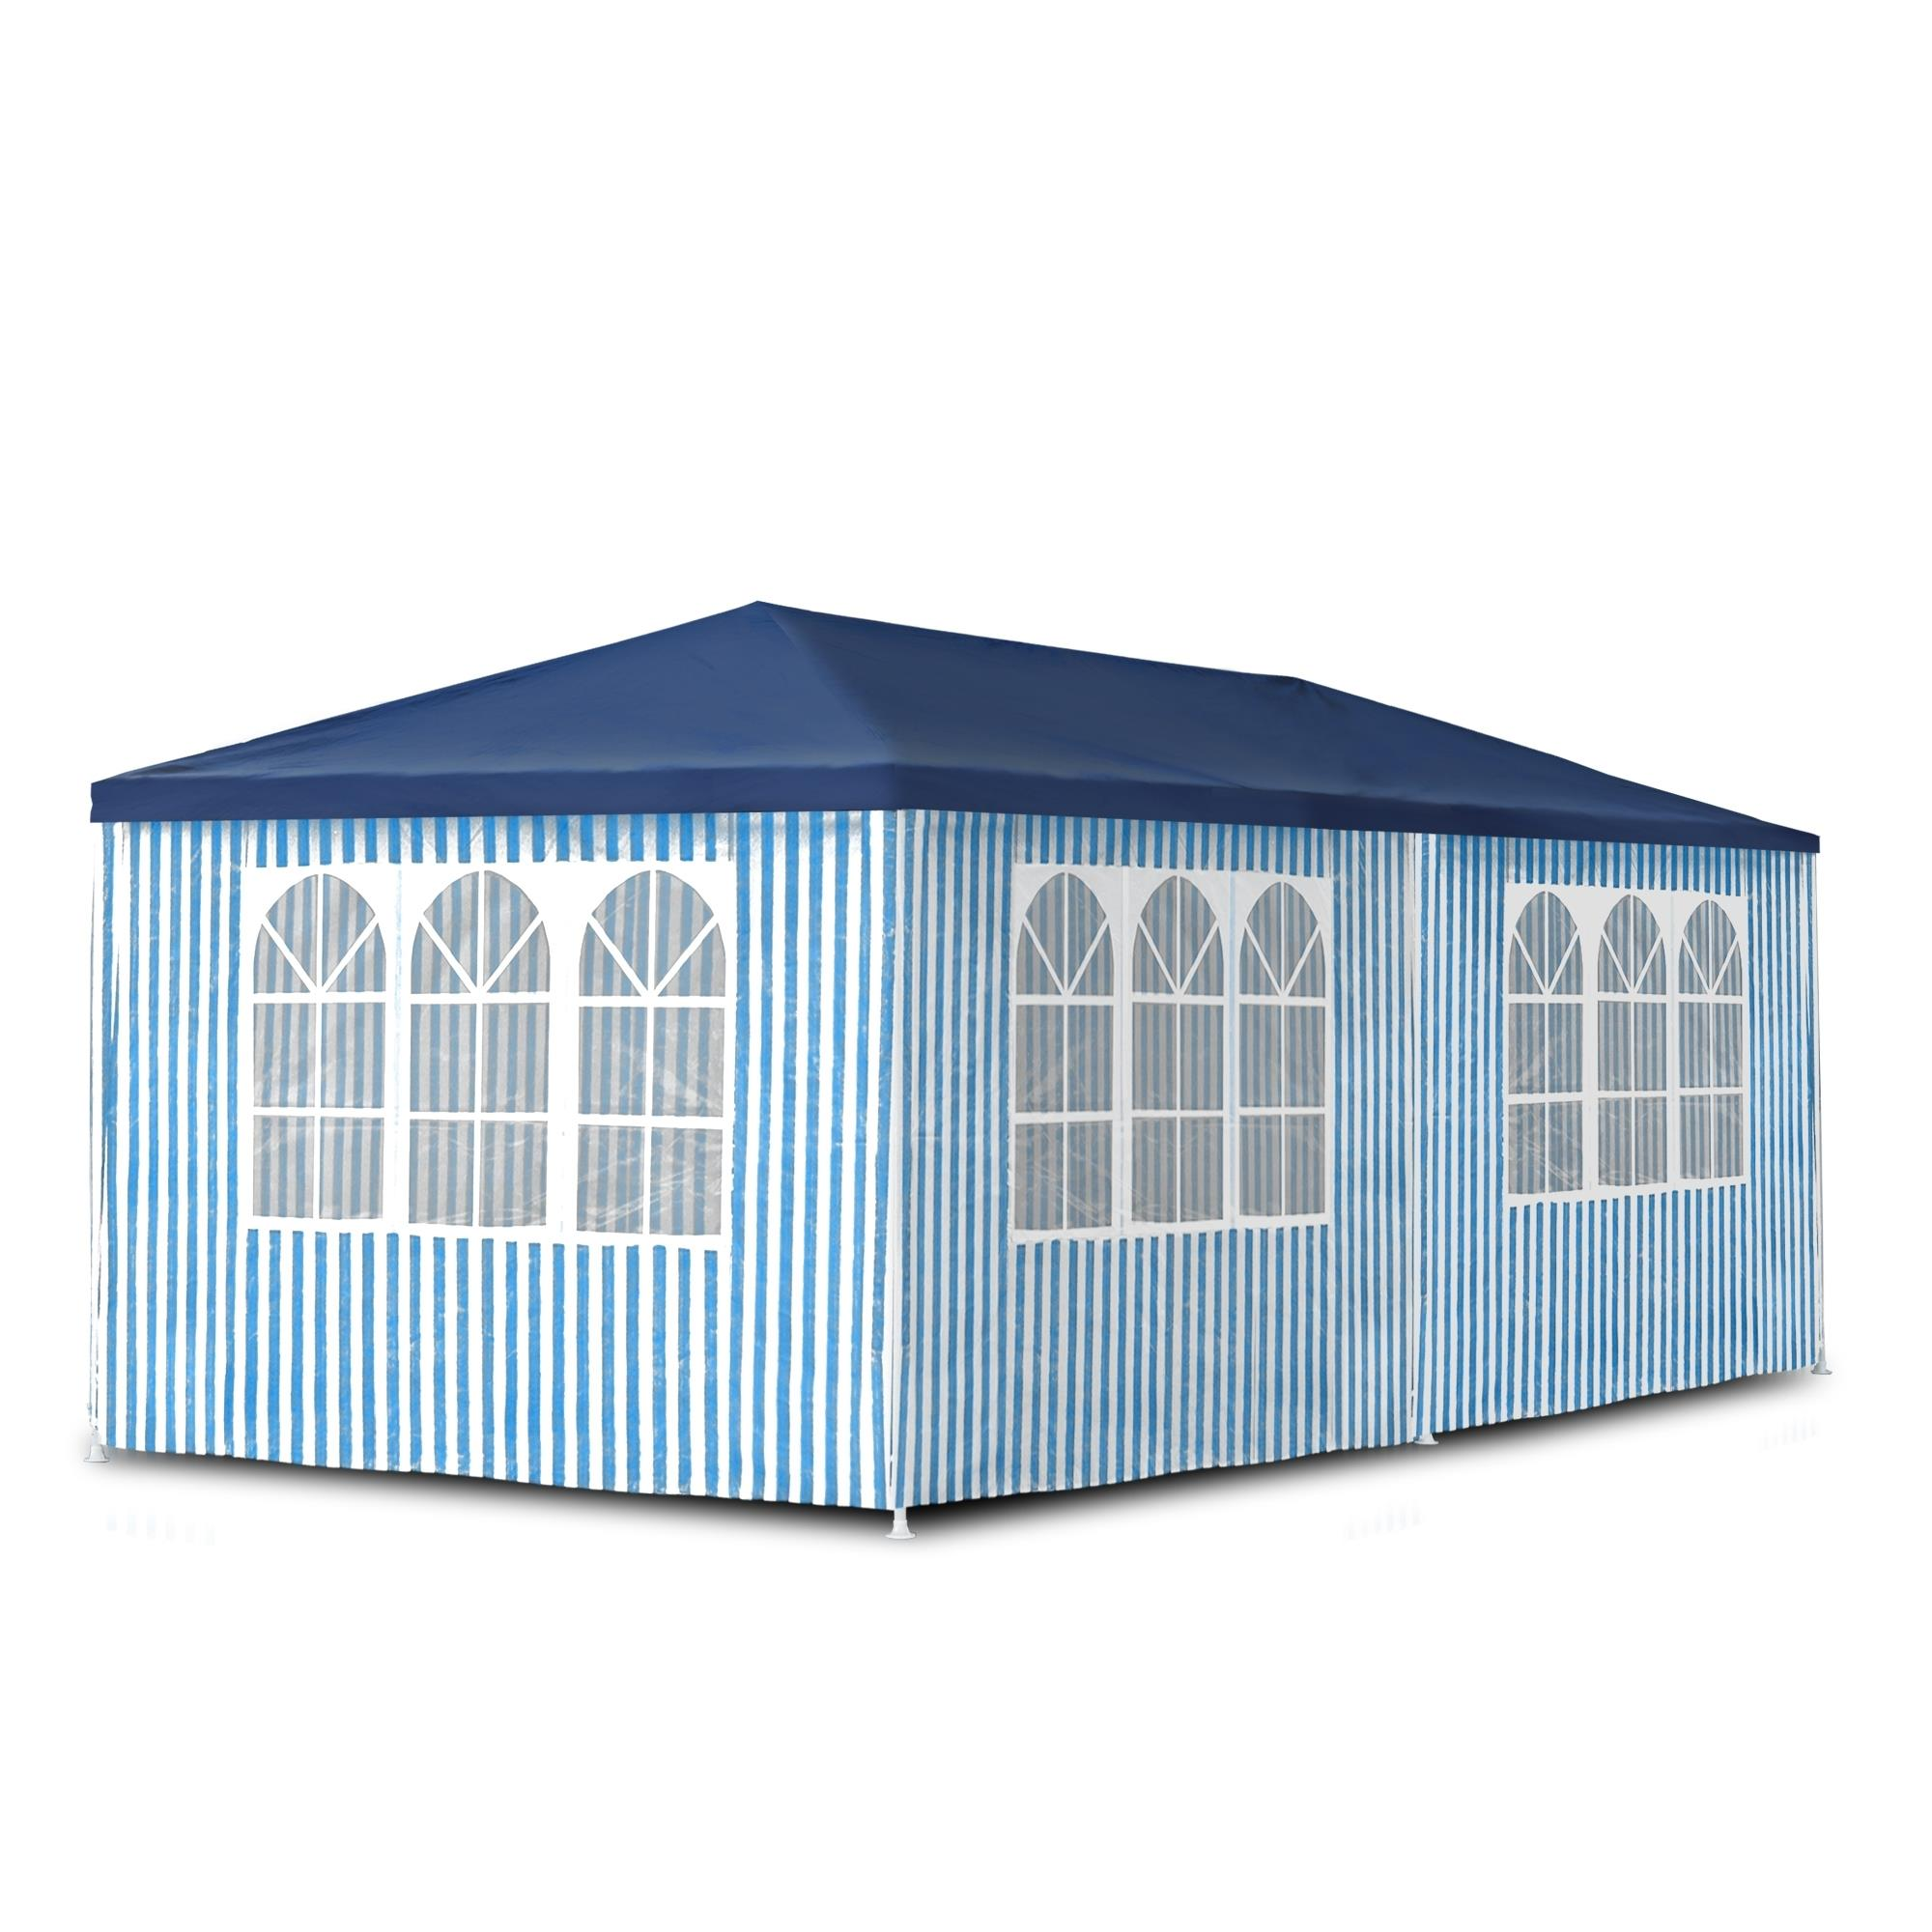 garten pavillon 3x6 m party party bier zelt blau wei wasserdicht seitenw nde ebay. Black Bedroom Furniture Sets. Home Design Ideas